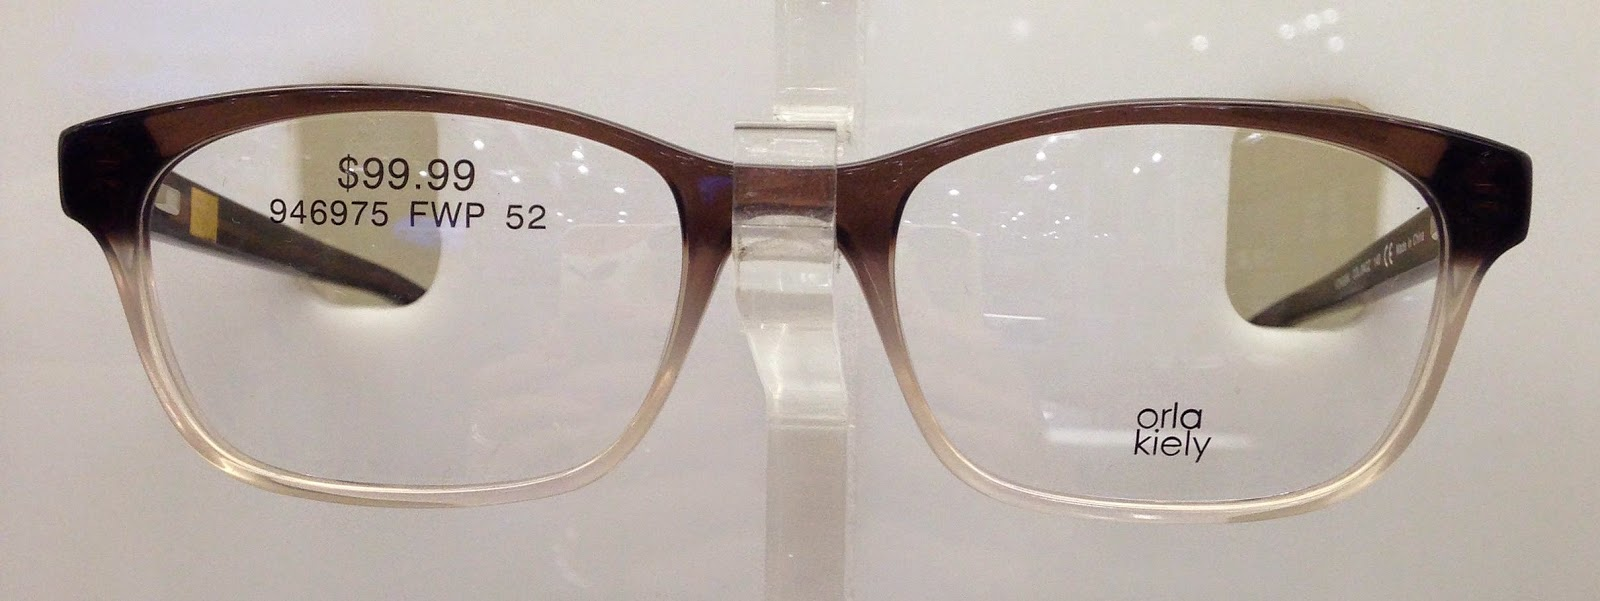 350112d50c Glasses For Small Framed Faces Costco. Costco Optical 4605 Morena Blvd. San  Diego